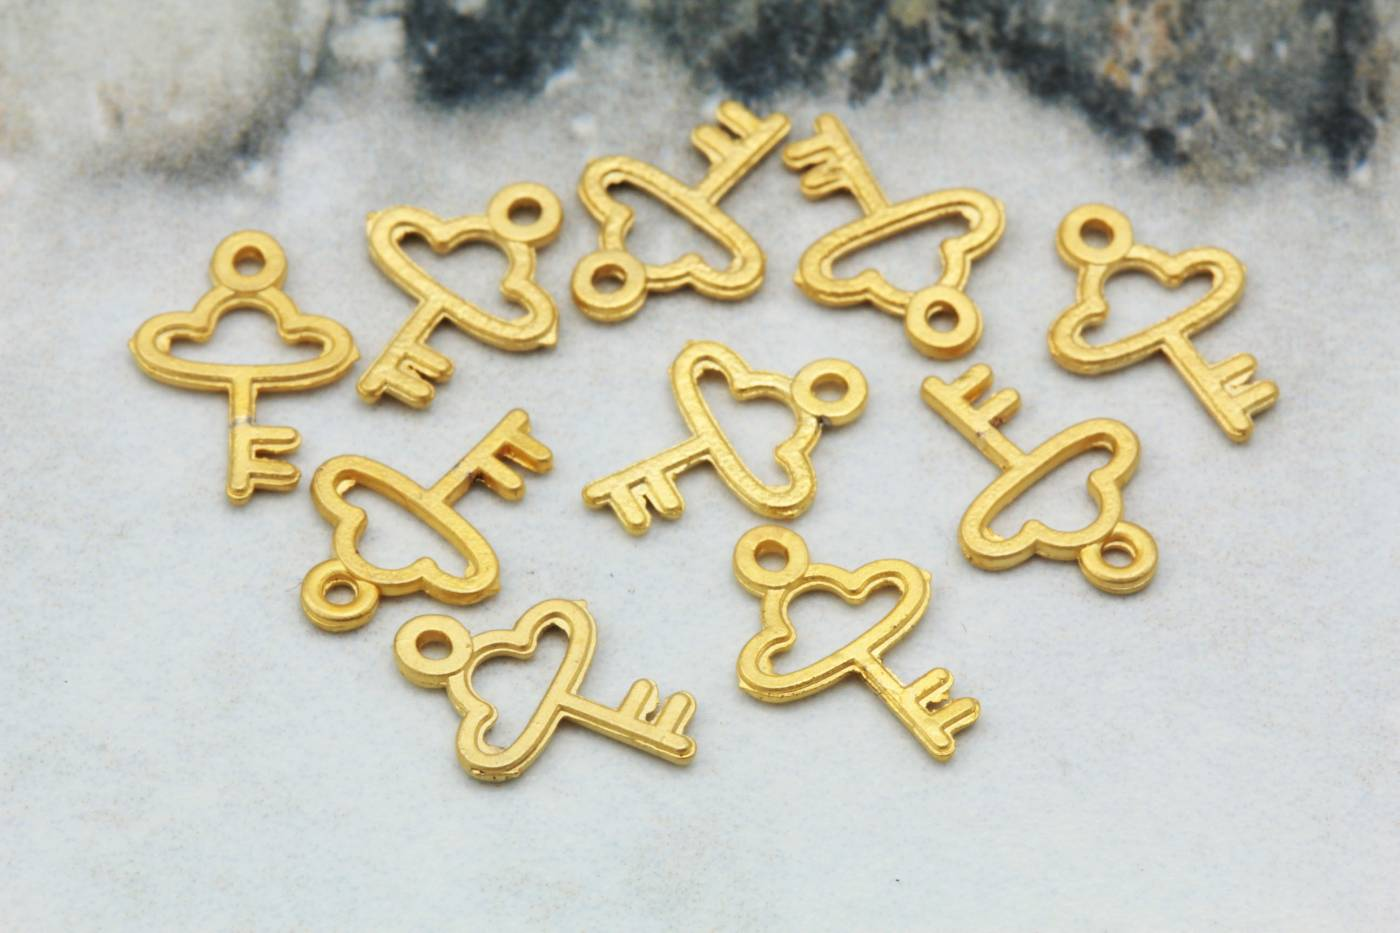 gold-metal-tiny-key-jewelry-pendants.jpg